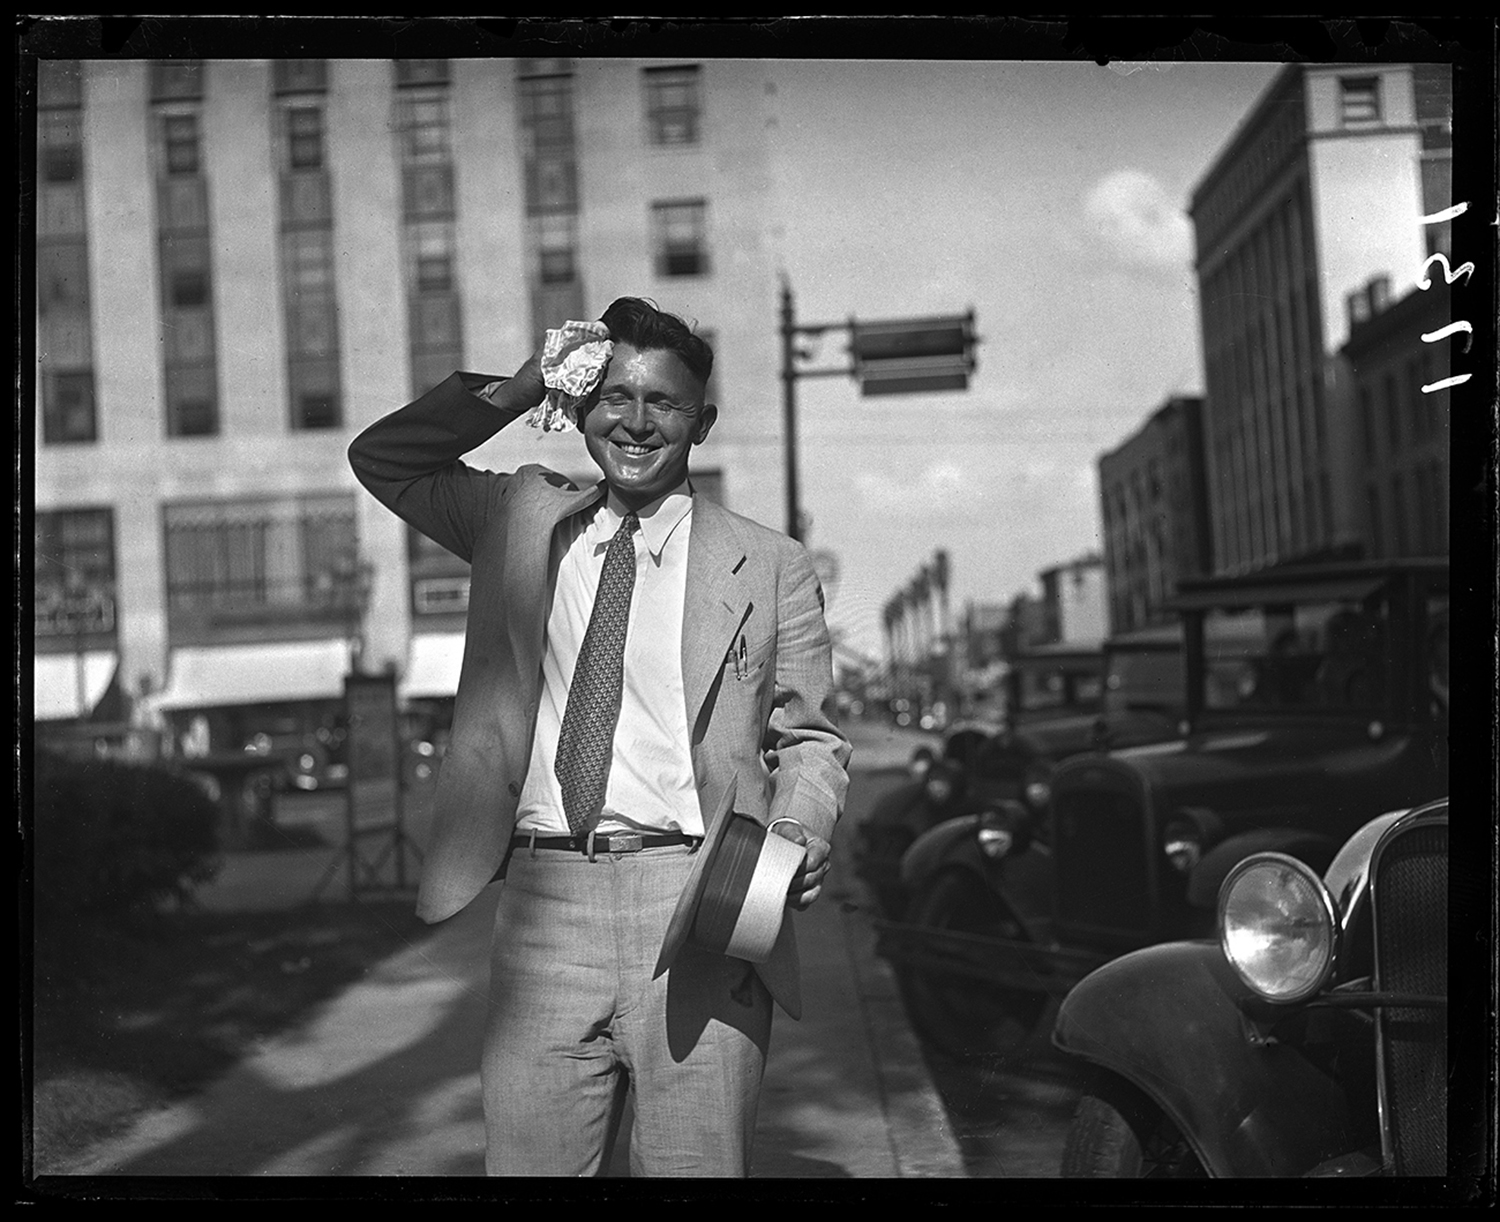 Frank Dillion wipes his brow on hot summer day, July 22, 1932, walking west on Adams from Sixth Street, C.I.P.S. Building in background. The image accompanied story about severe heat wave that had begun July 12 with temperatures above 90 degrees for 10 days straight and up to 100 degrees. File/The State Journal-Register